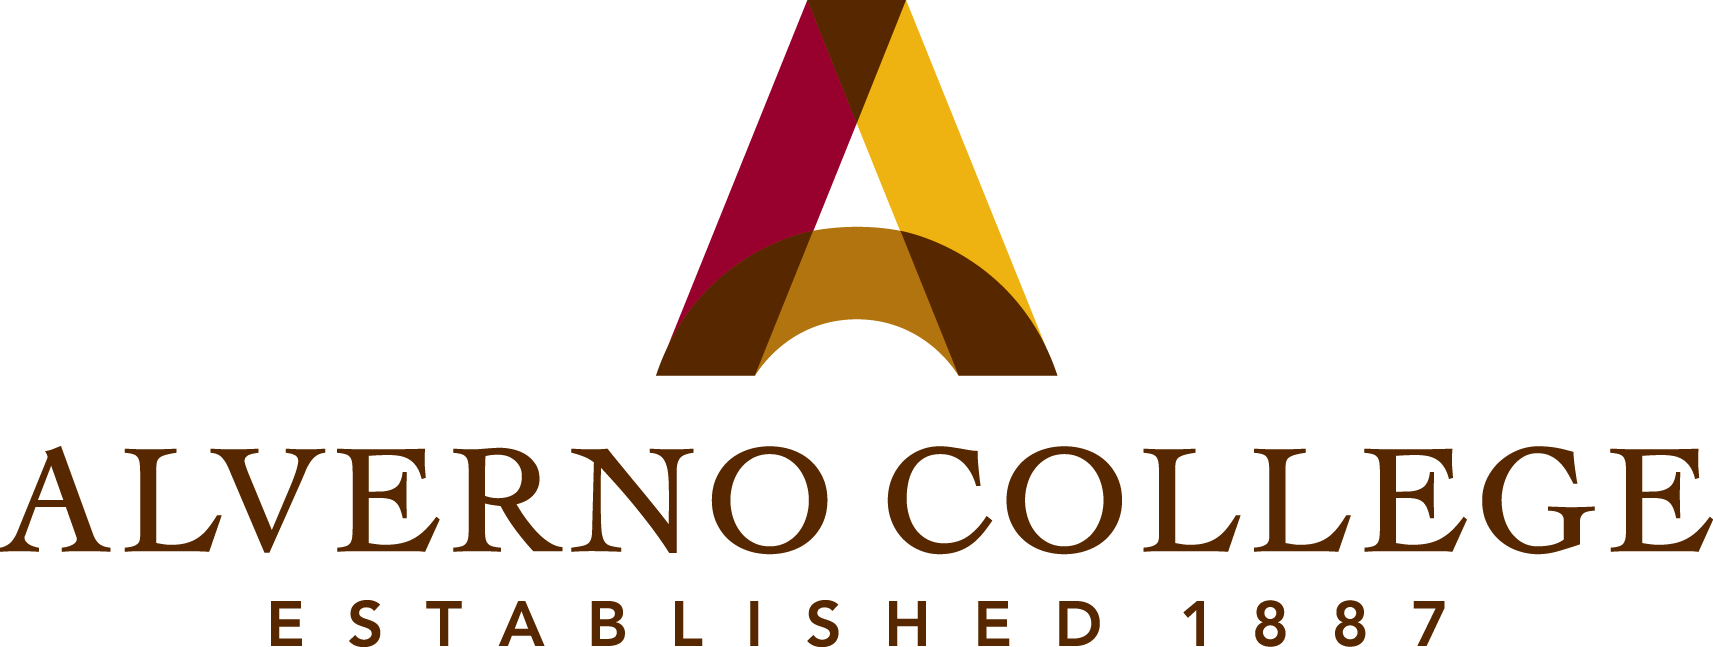 logo_color_stacked_horizontal_HiRes.png